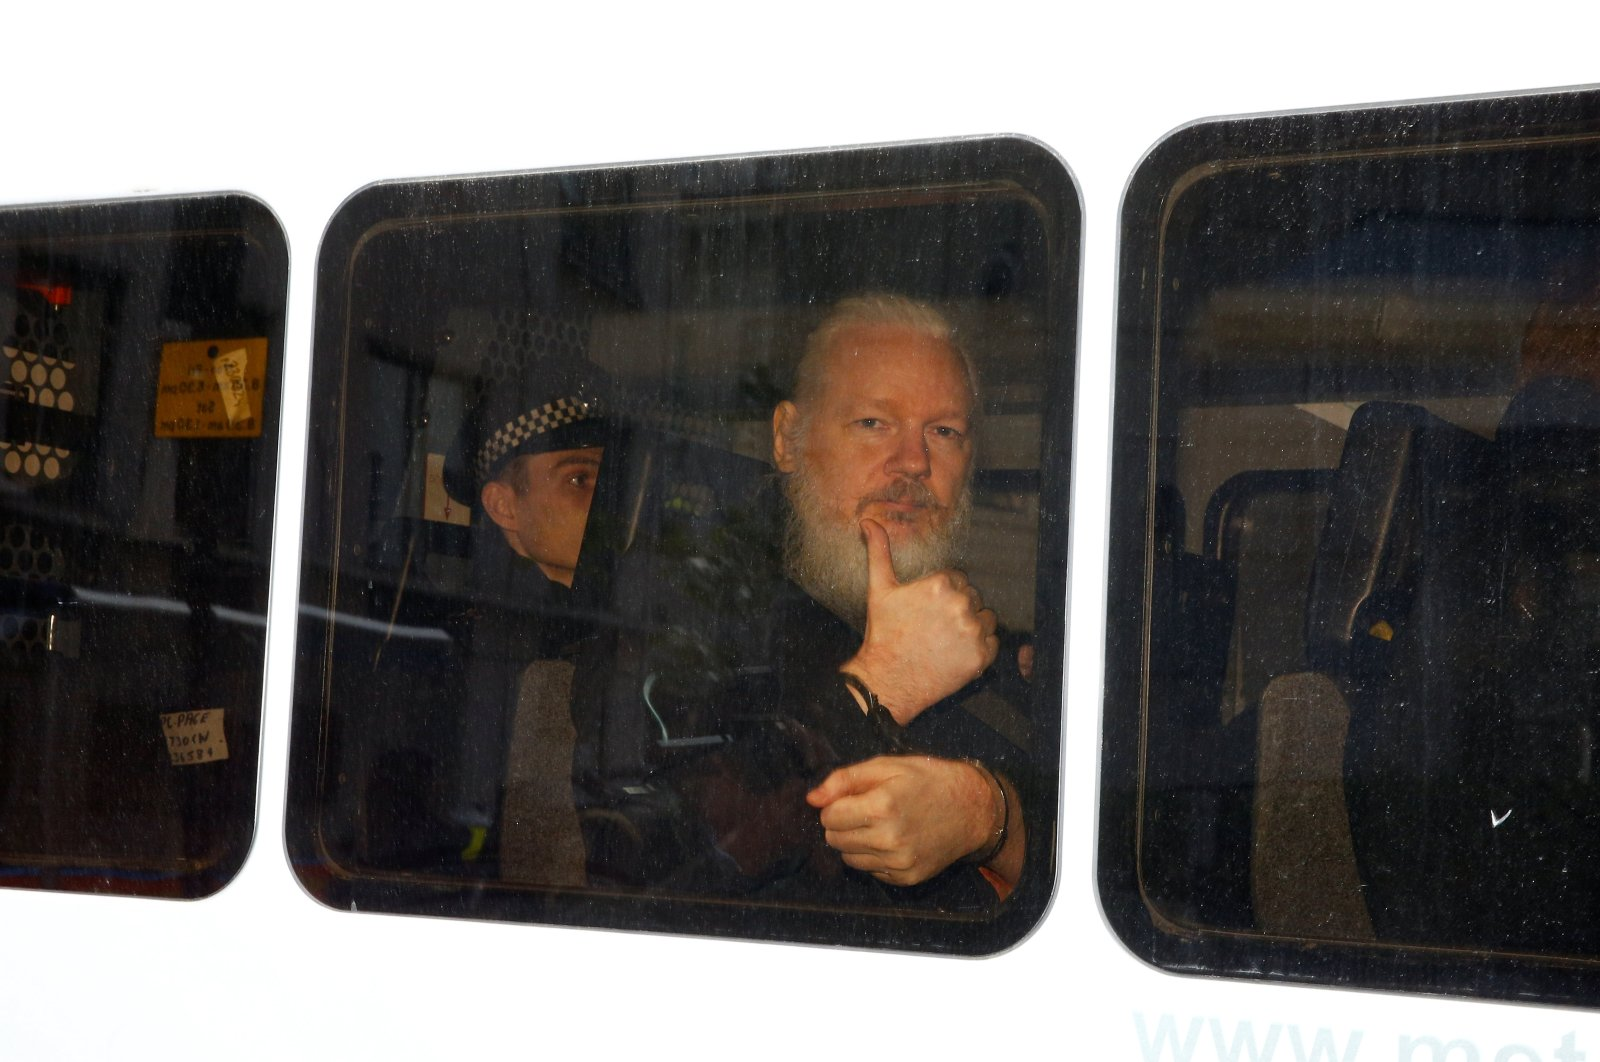 WikiLeaks founder Julian Assange is seen in a police van after he was arrested by British police outside the Ecuadorian embassy, London, April 11, 2019. (Reuters Photo)